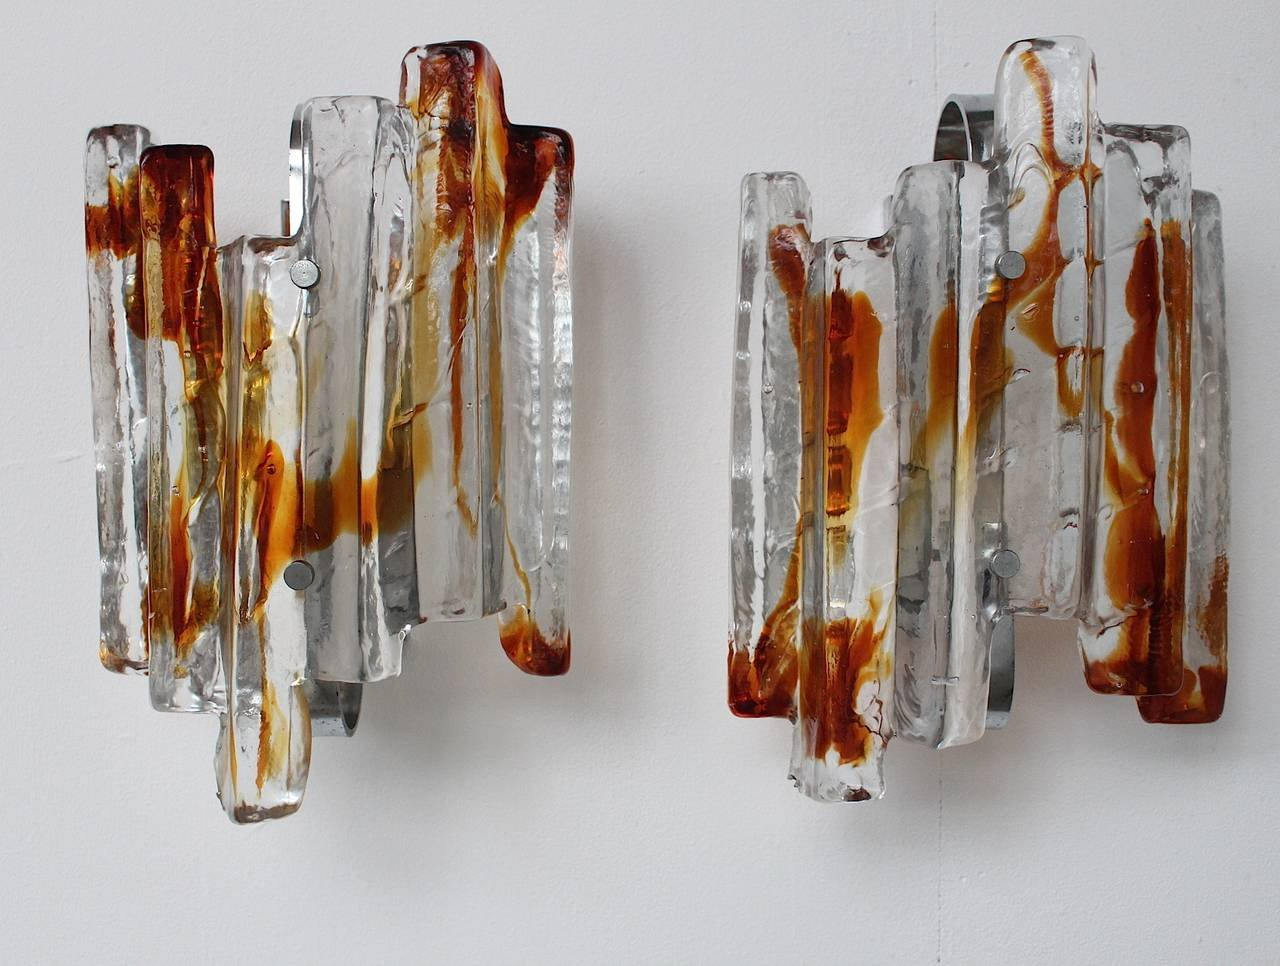 Vintage Sculptural Murano Glass Wall Sconce from Mazzega for sale at Pamono